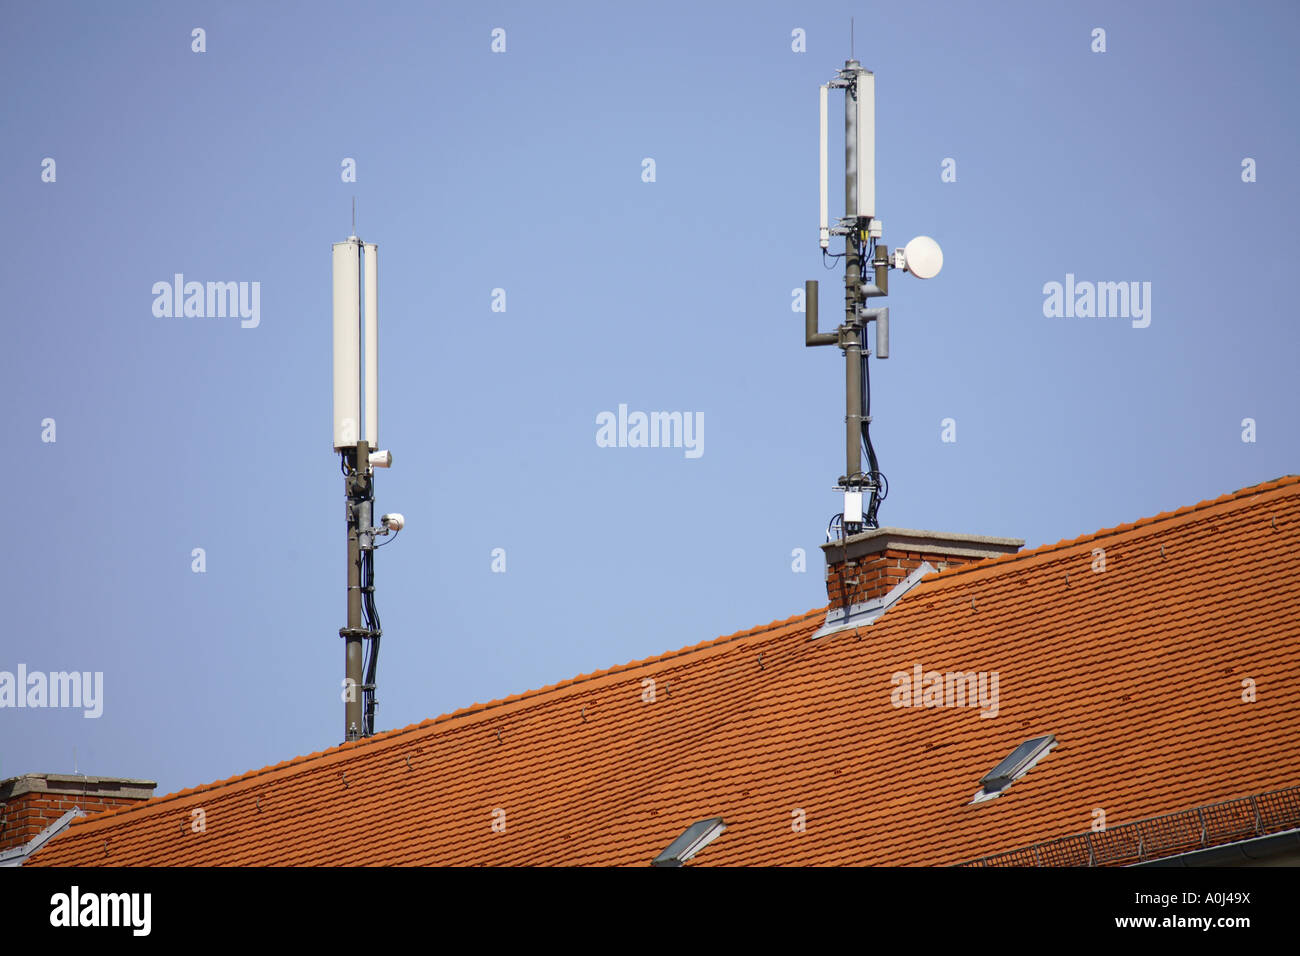 Charming Mobile Phone Antennas On Roof